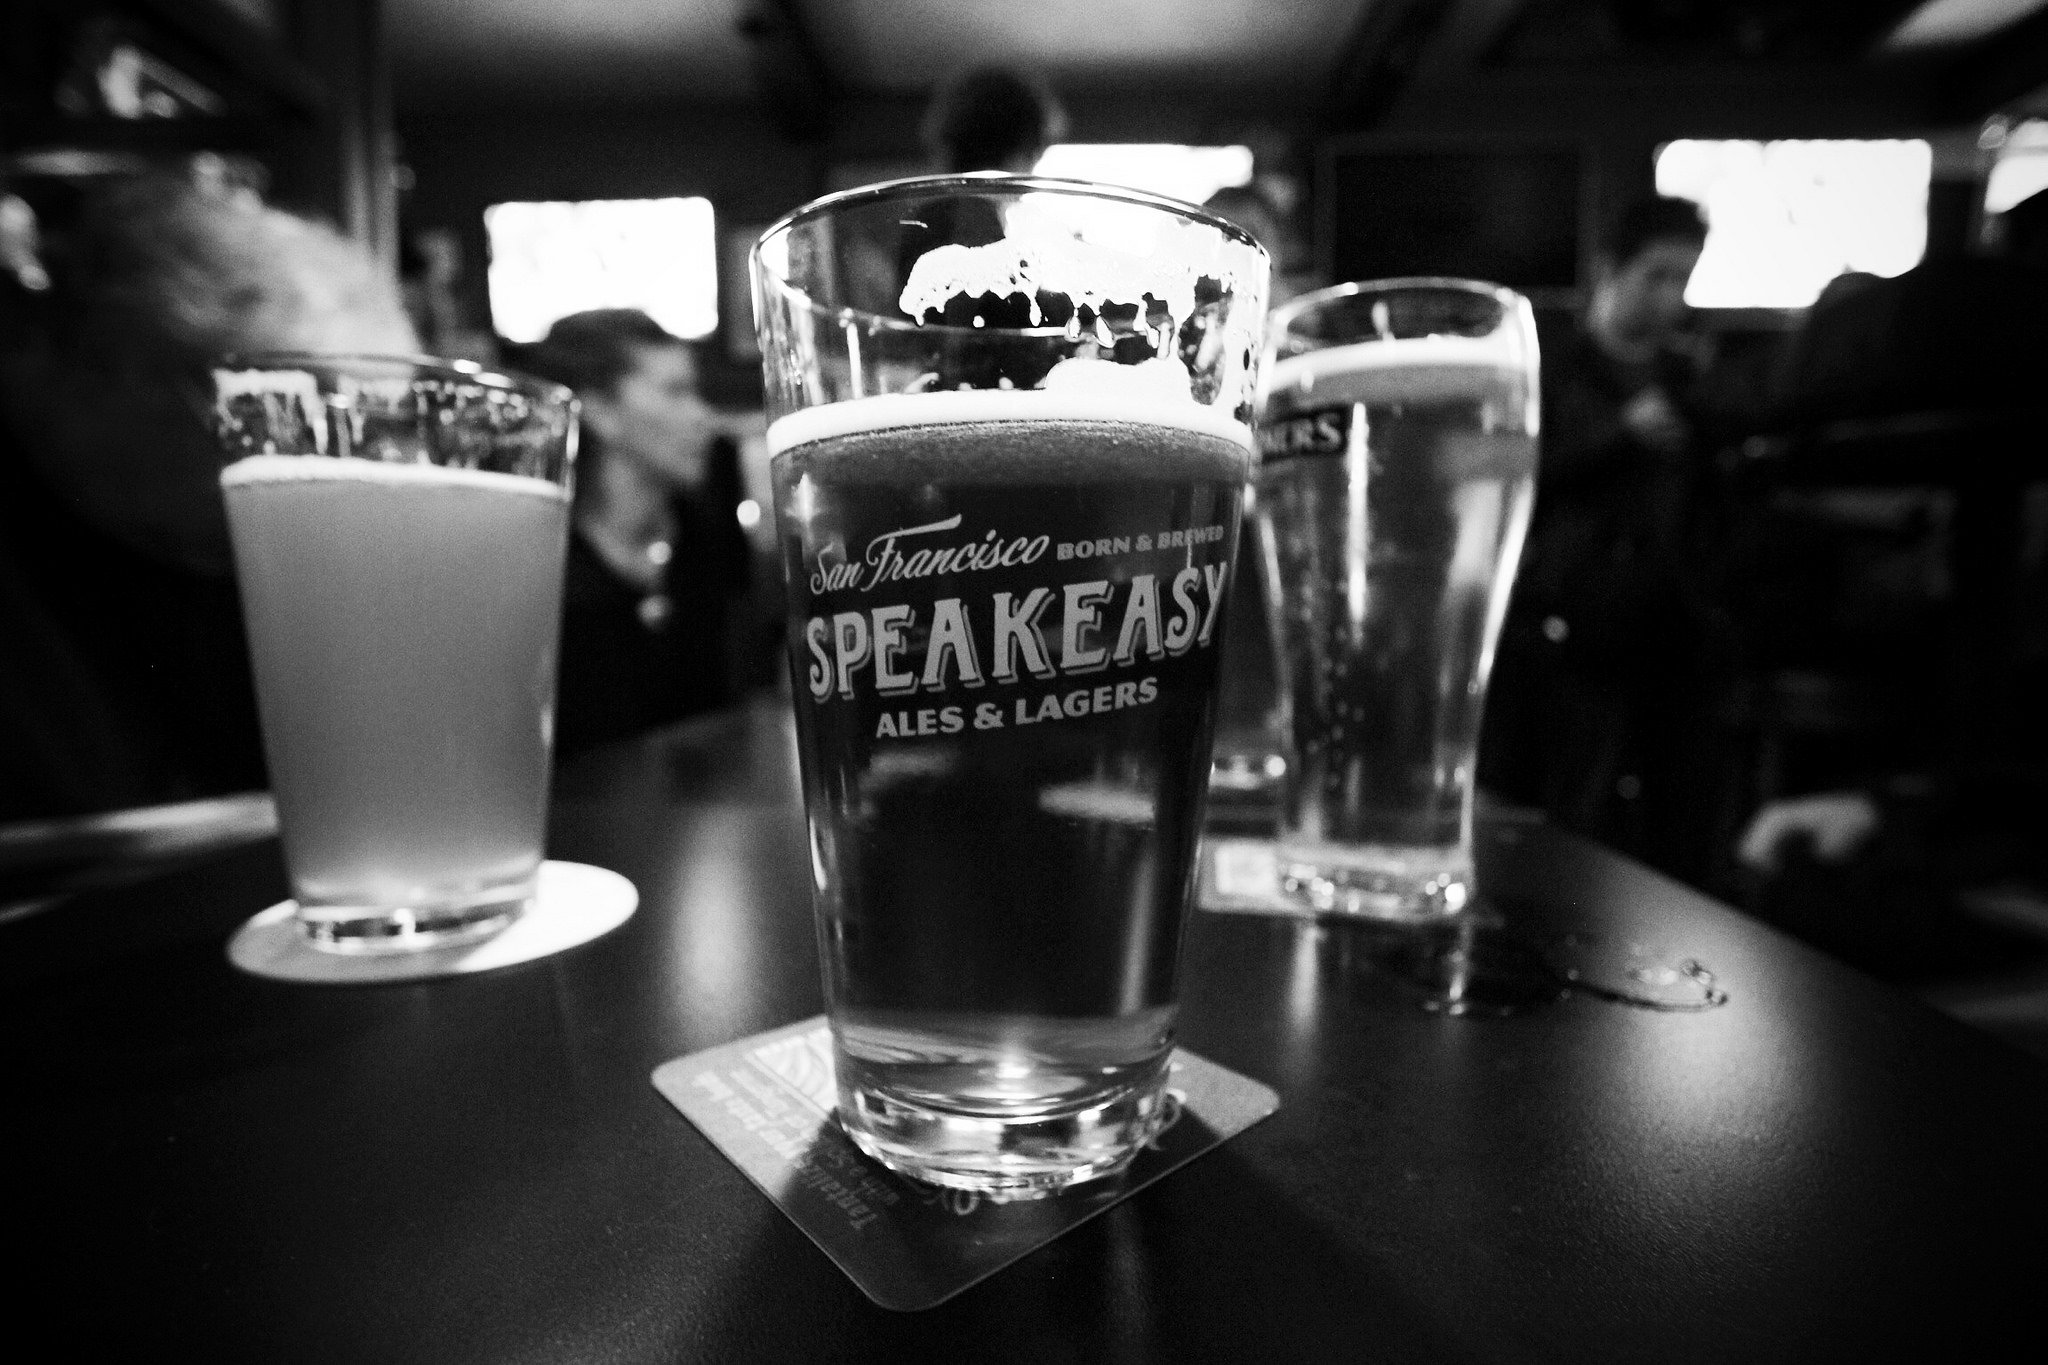 Speakeasy Ales & Lagers - San Francisco, CA